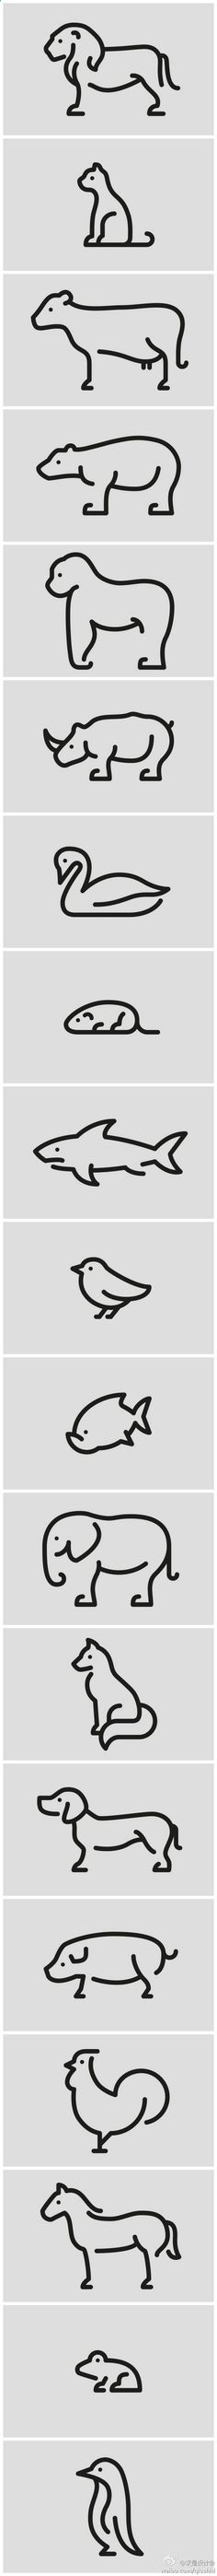 Easy to draw animals - Imgur || would make a great finger tracing activity - or laminated book to trace the lines if they were faded back